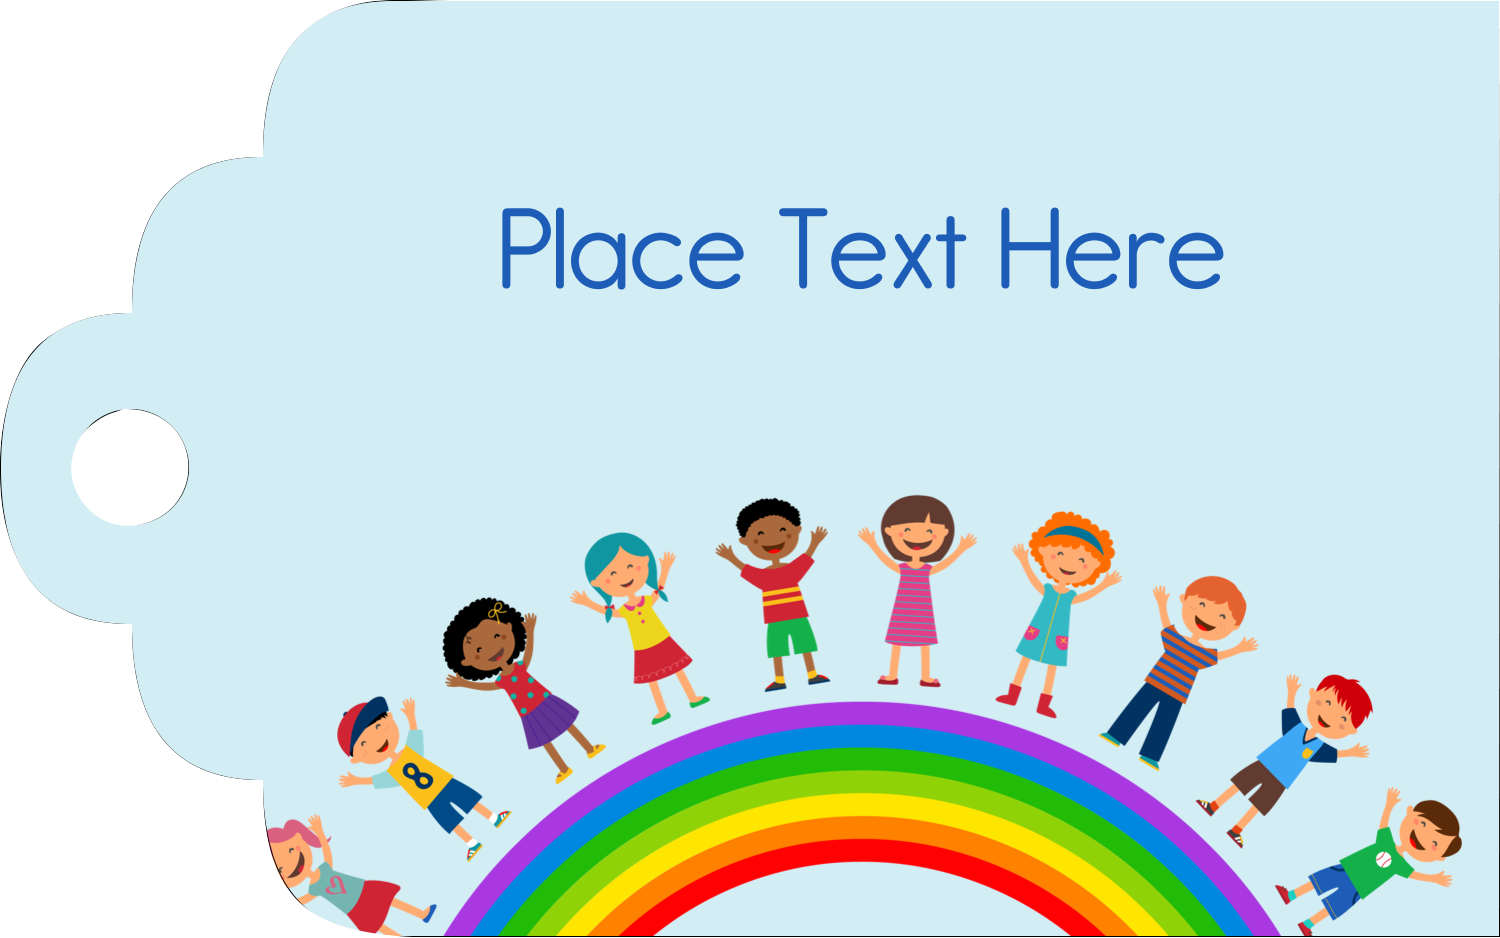 Printable Tags - Childcare Education